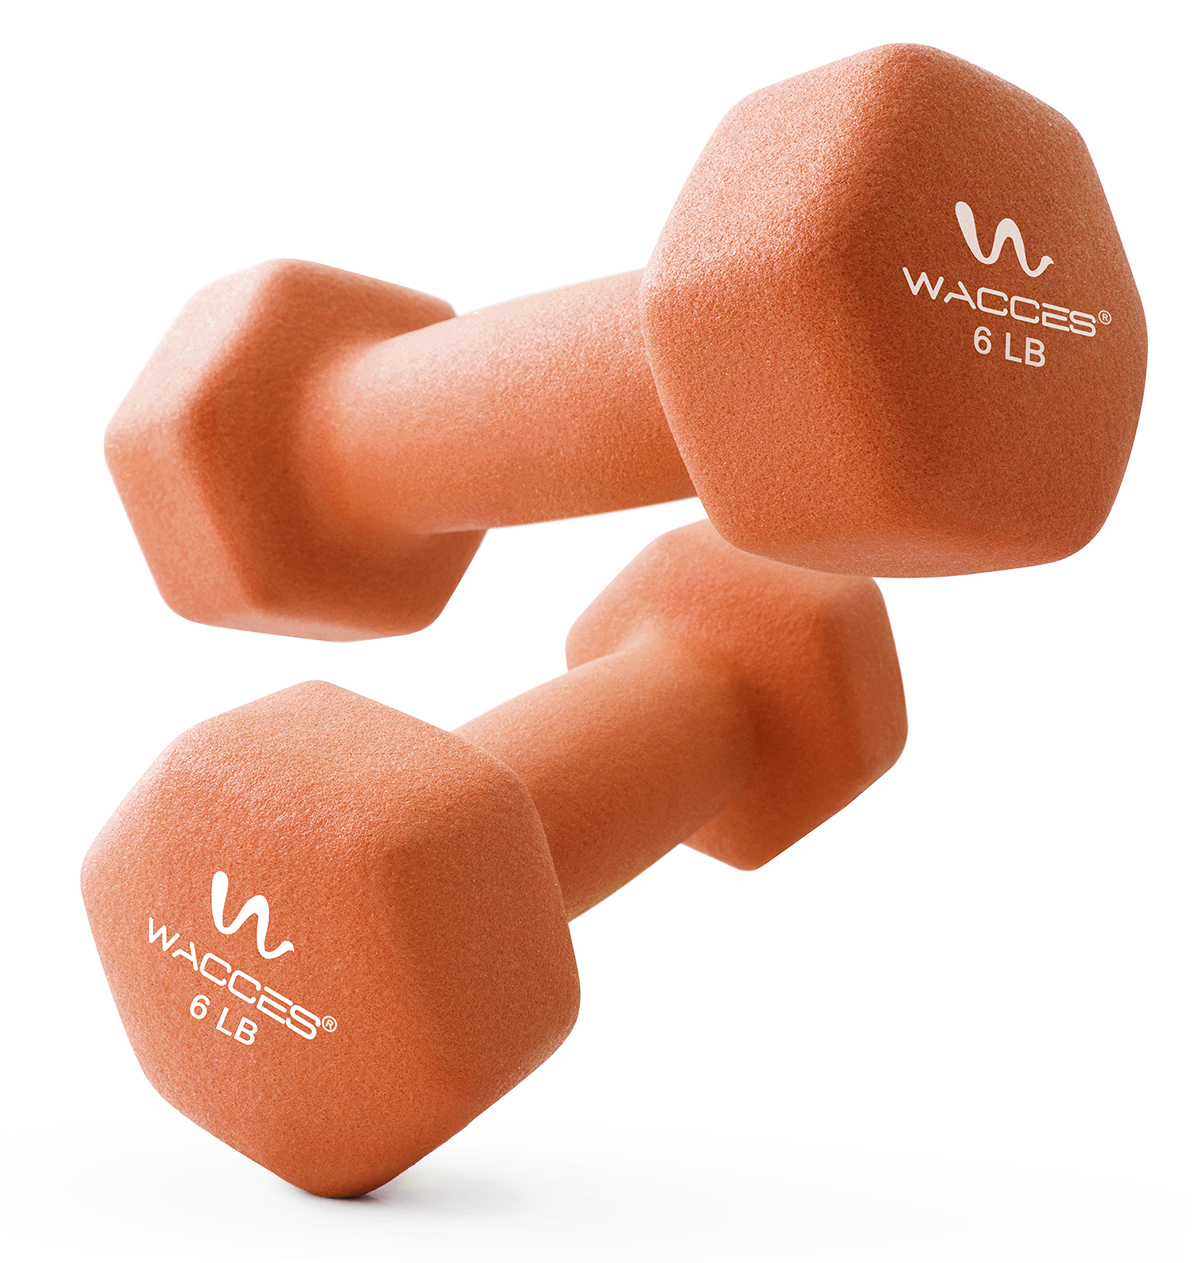 Wacces Neoprene Dipped Coated Set of 2 Dumbbells Hand Weights Sets Non Slip Grip 2 x 6 LB